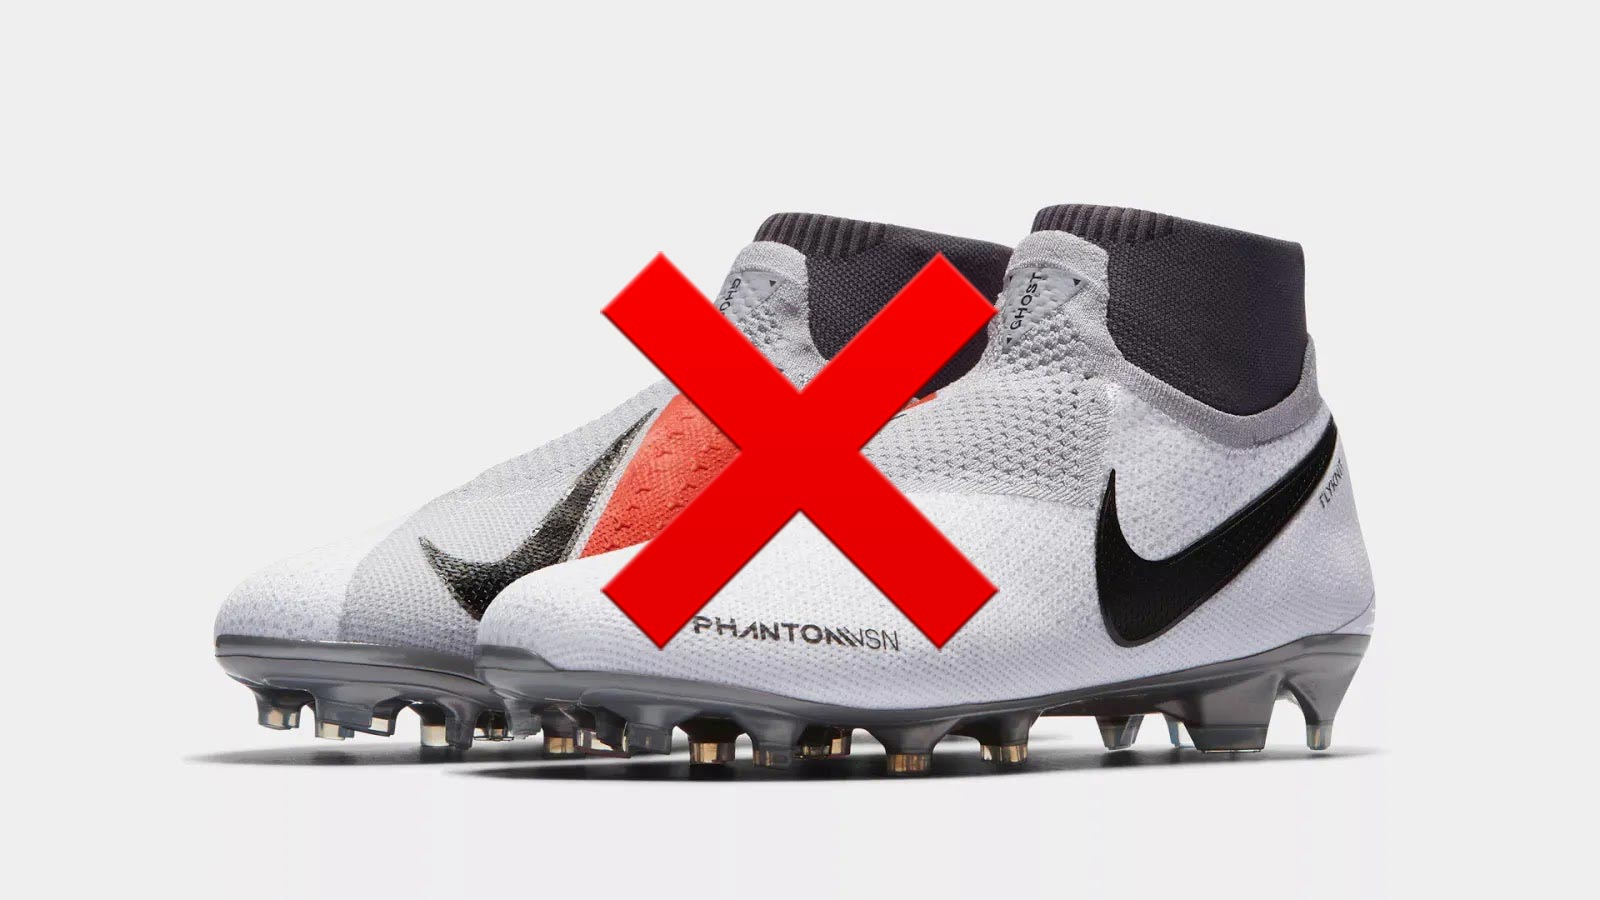 e1aecaff41a0 In July 2018, Nike released the all-new Nike Phantom VSN football boot. Now  we received exclusive release information about the next-generation Nike  Phantom ...